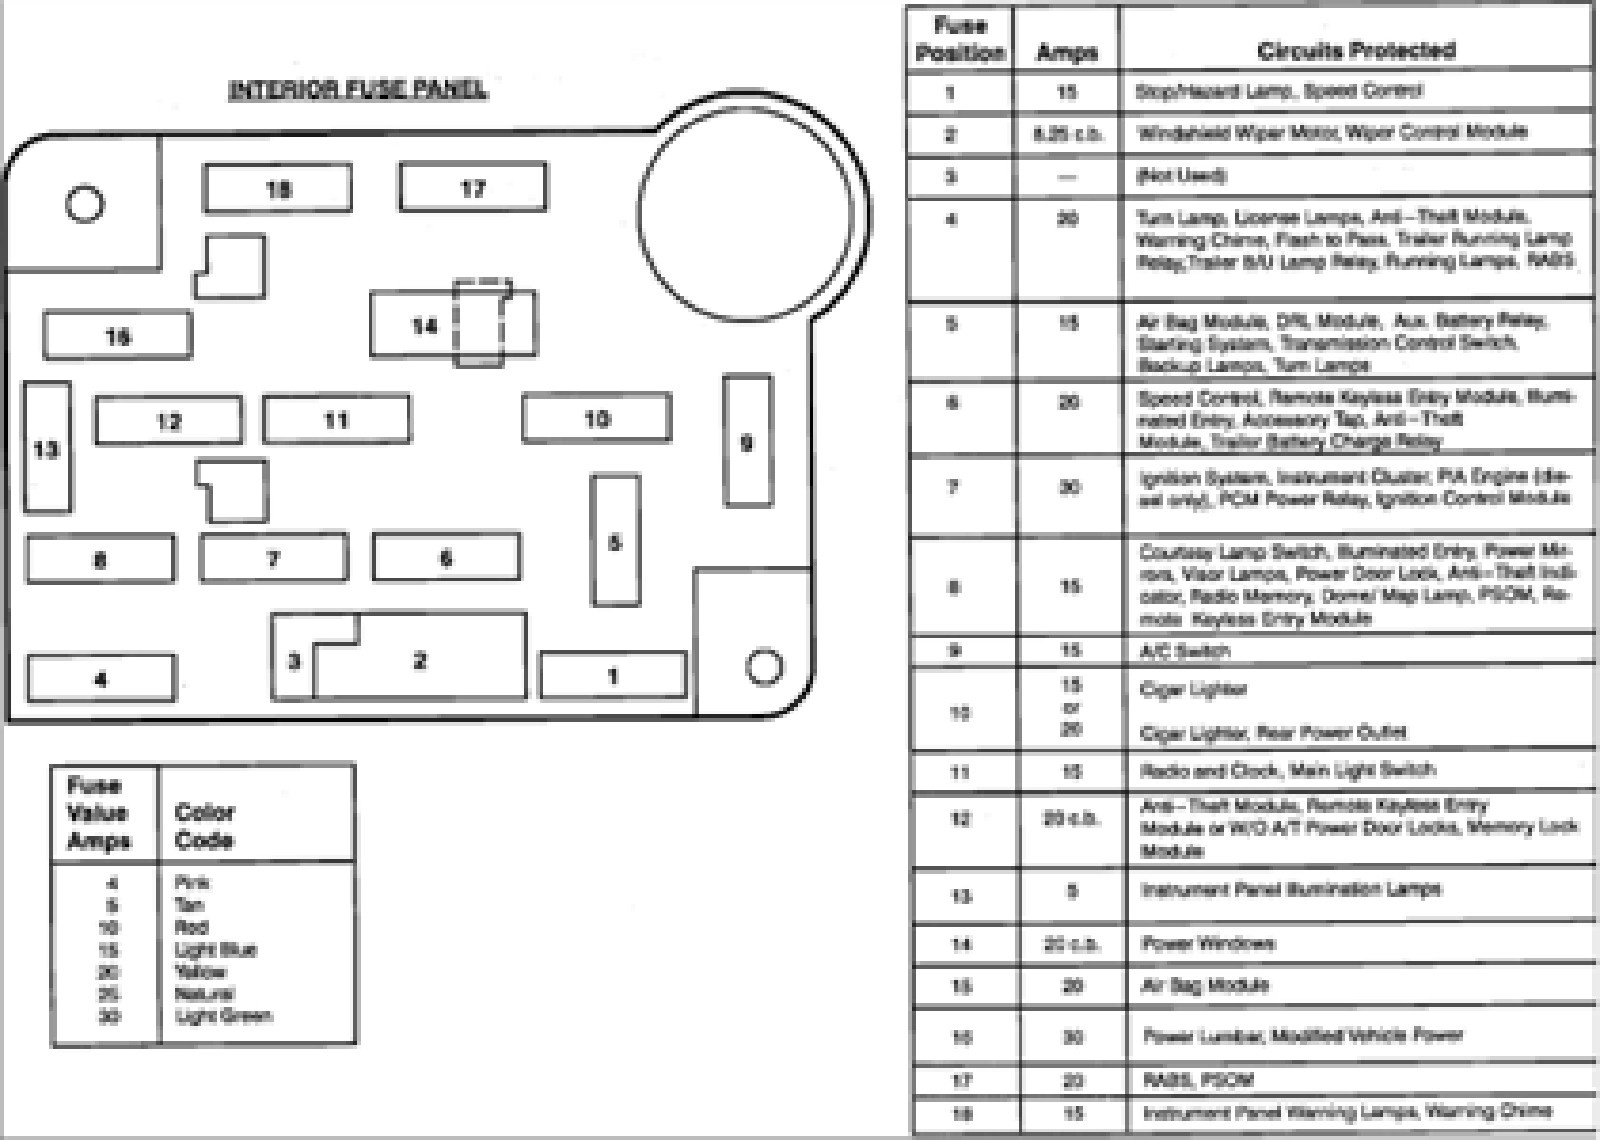 Dodge Spirit Fuse Box 1993 Ford Taurus Reinvent Your Wiring Diagram 1990 Online Schematics Rh Delvato Co Wagon Location